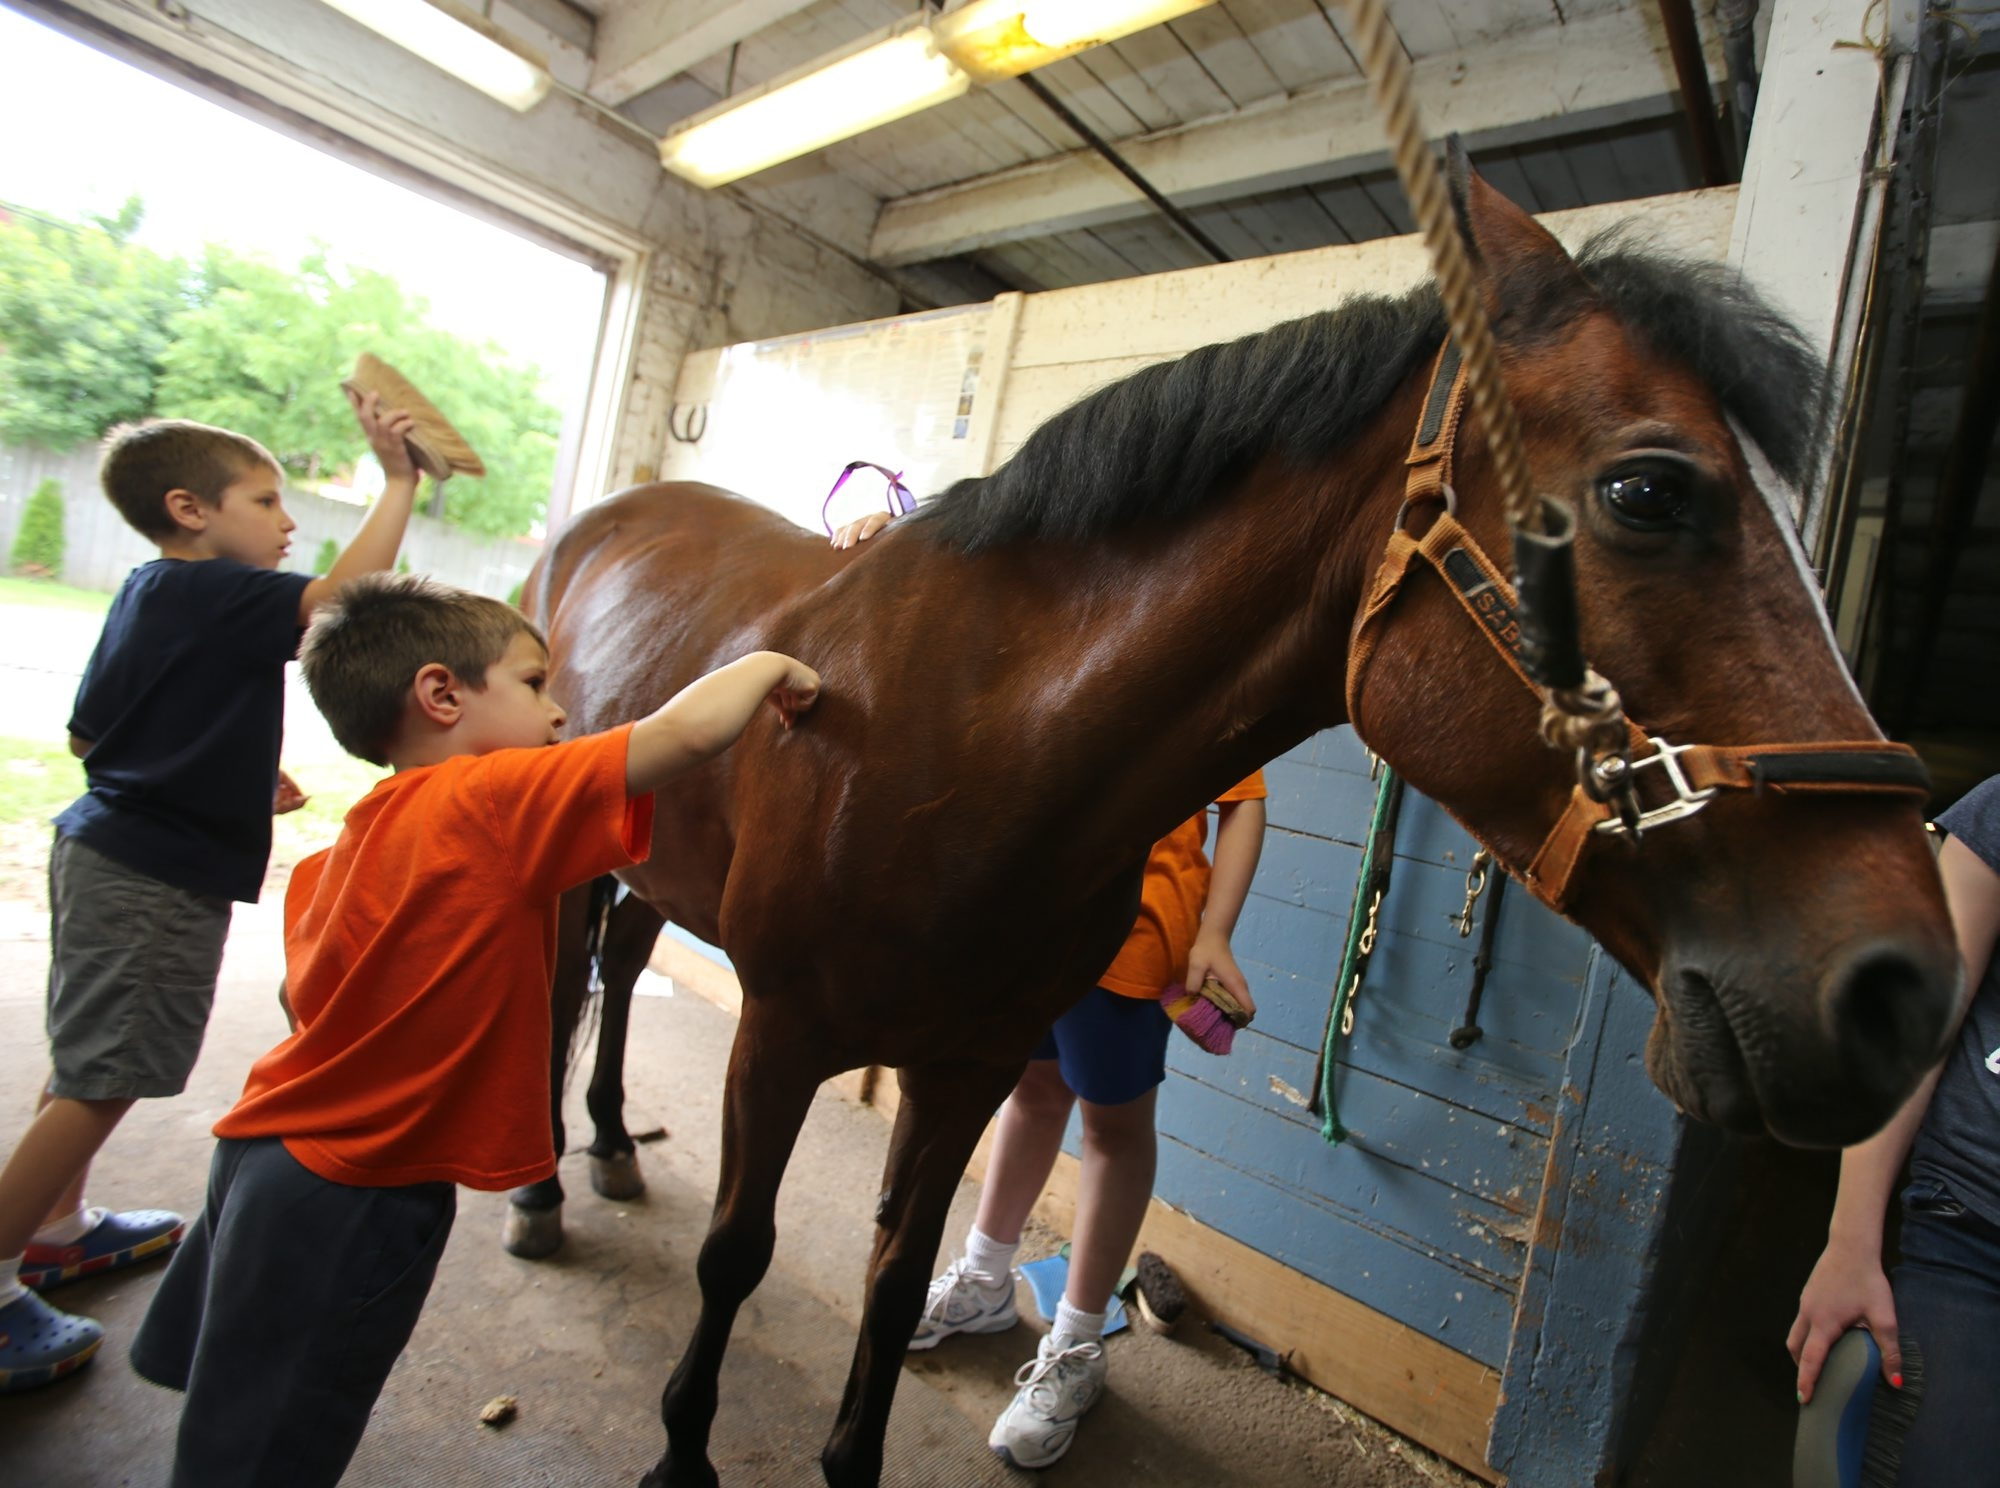 Brothers Alex, 11, left, and Jackson, 5, Olejniczak, of Elma, groom Howie the horse at the first Stephen's Fun Day.